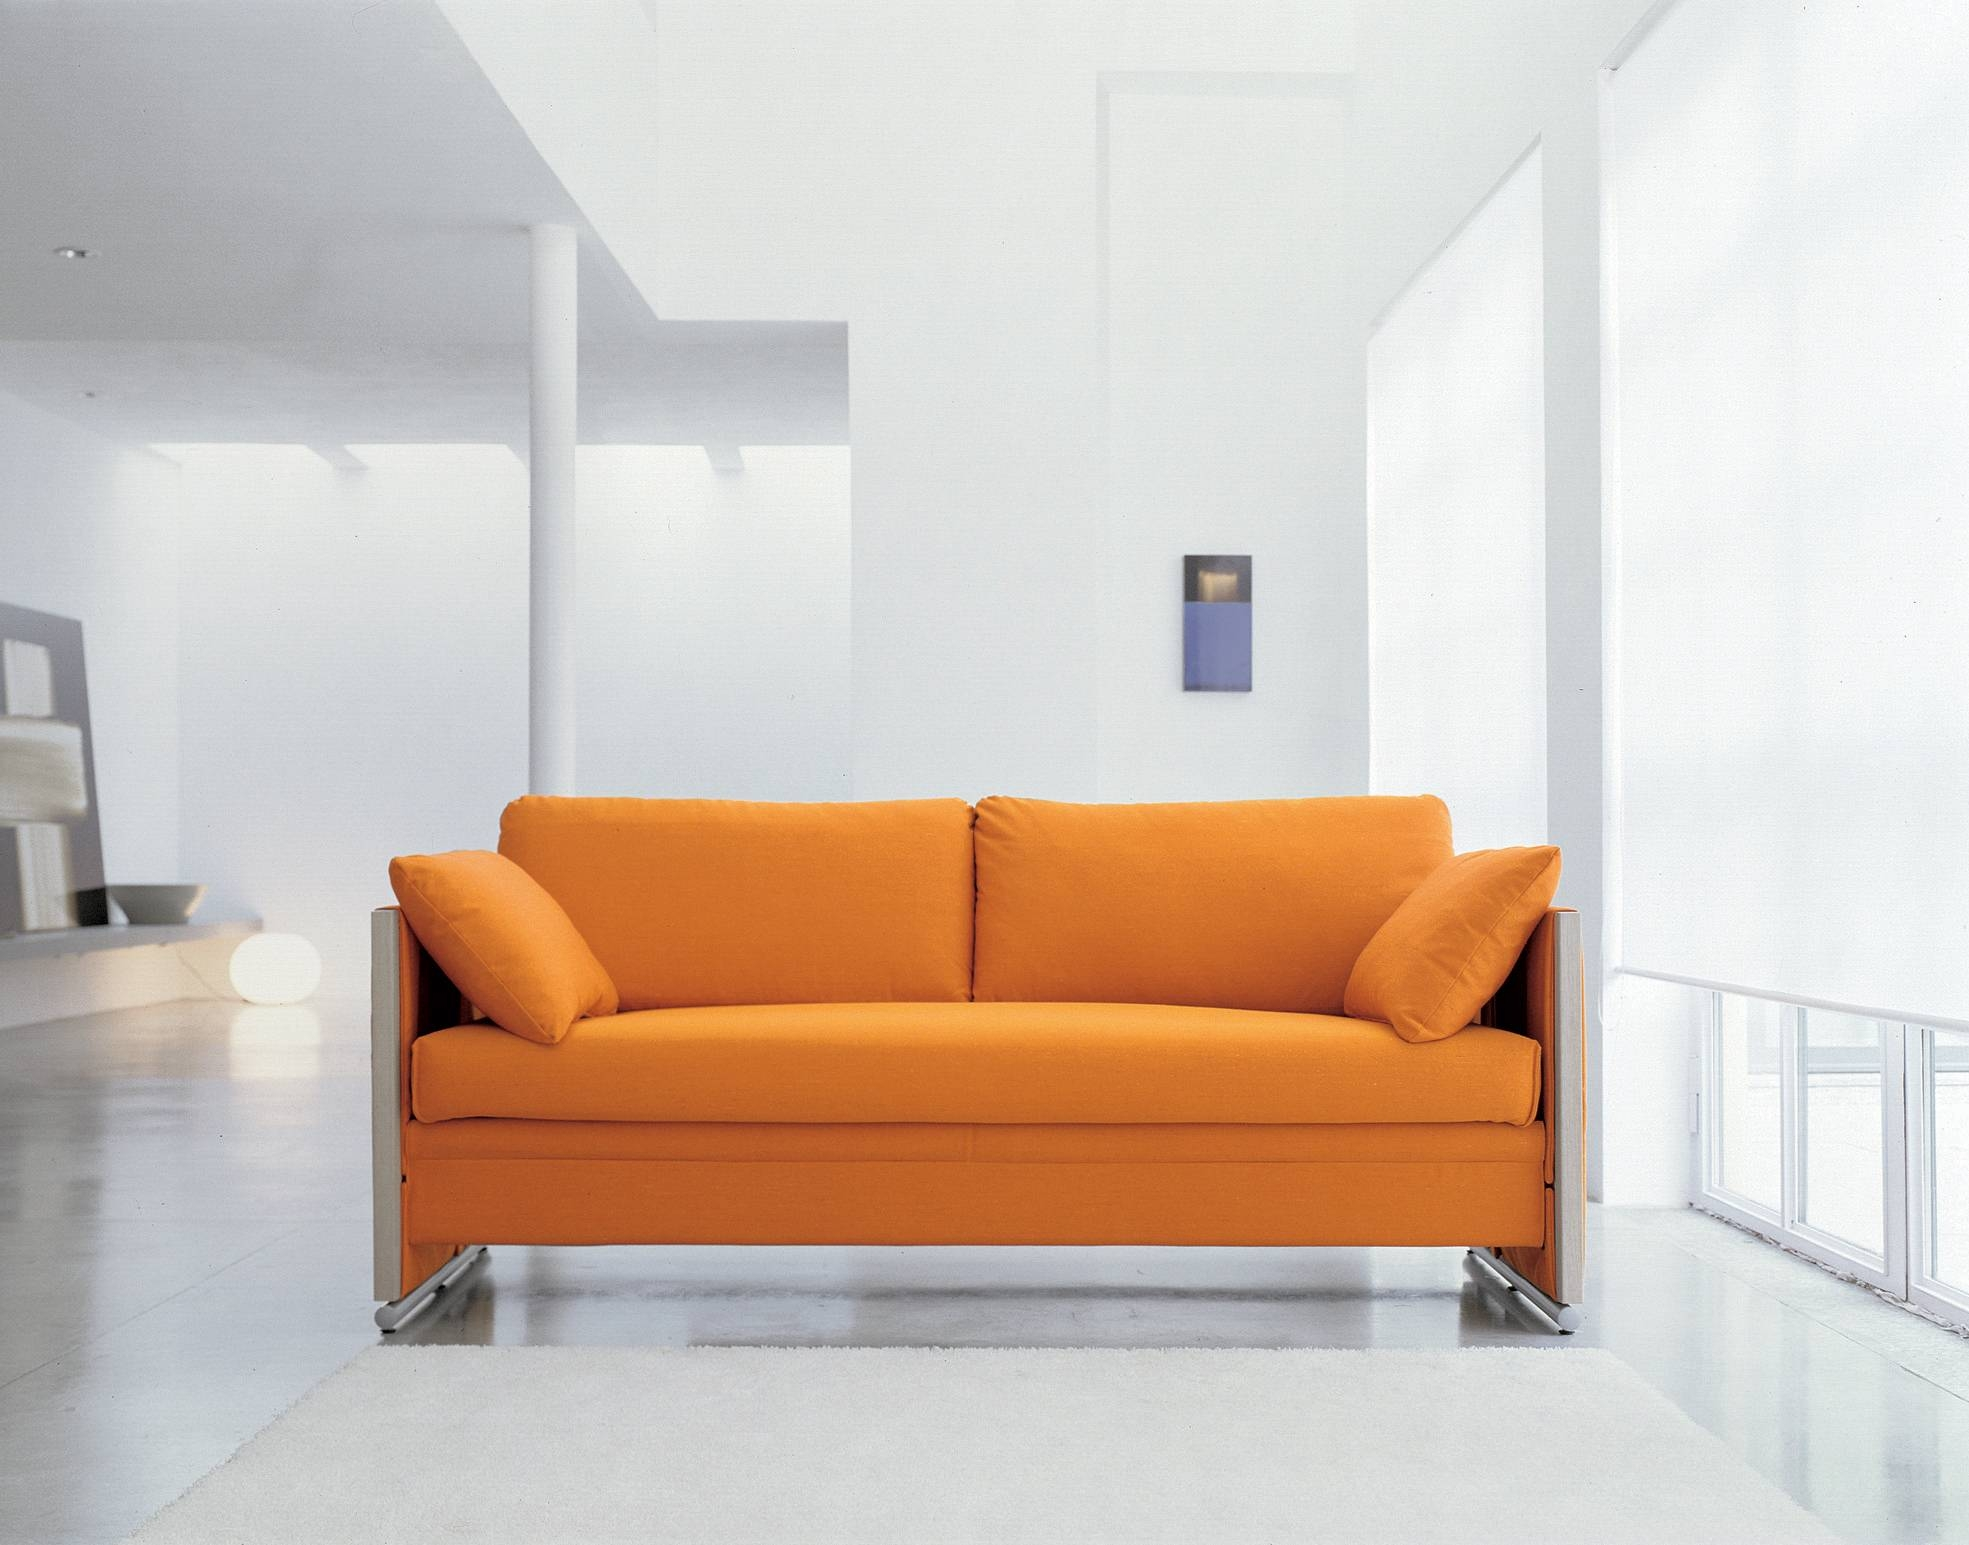 Doc A Sofa Bed That Converts In To A Bunk Bed In Two Secounds throughout Sofa Bunk Beds (Image 11 of 30)